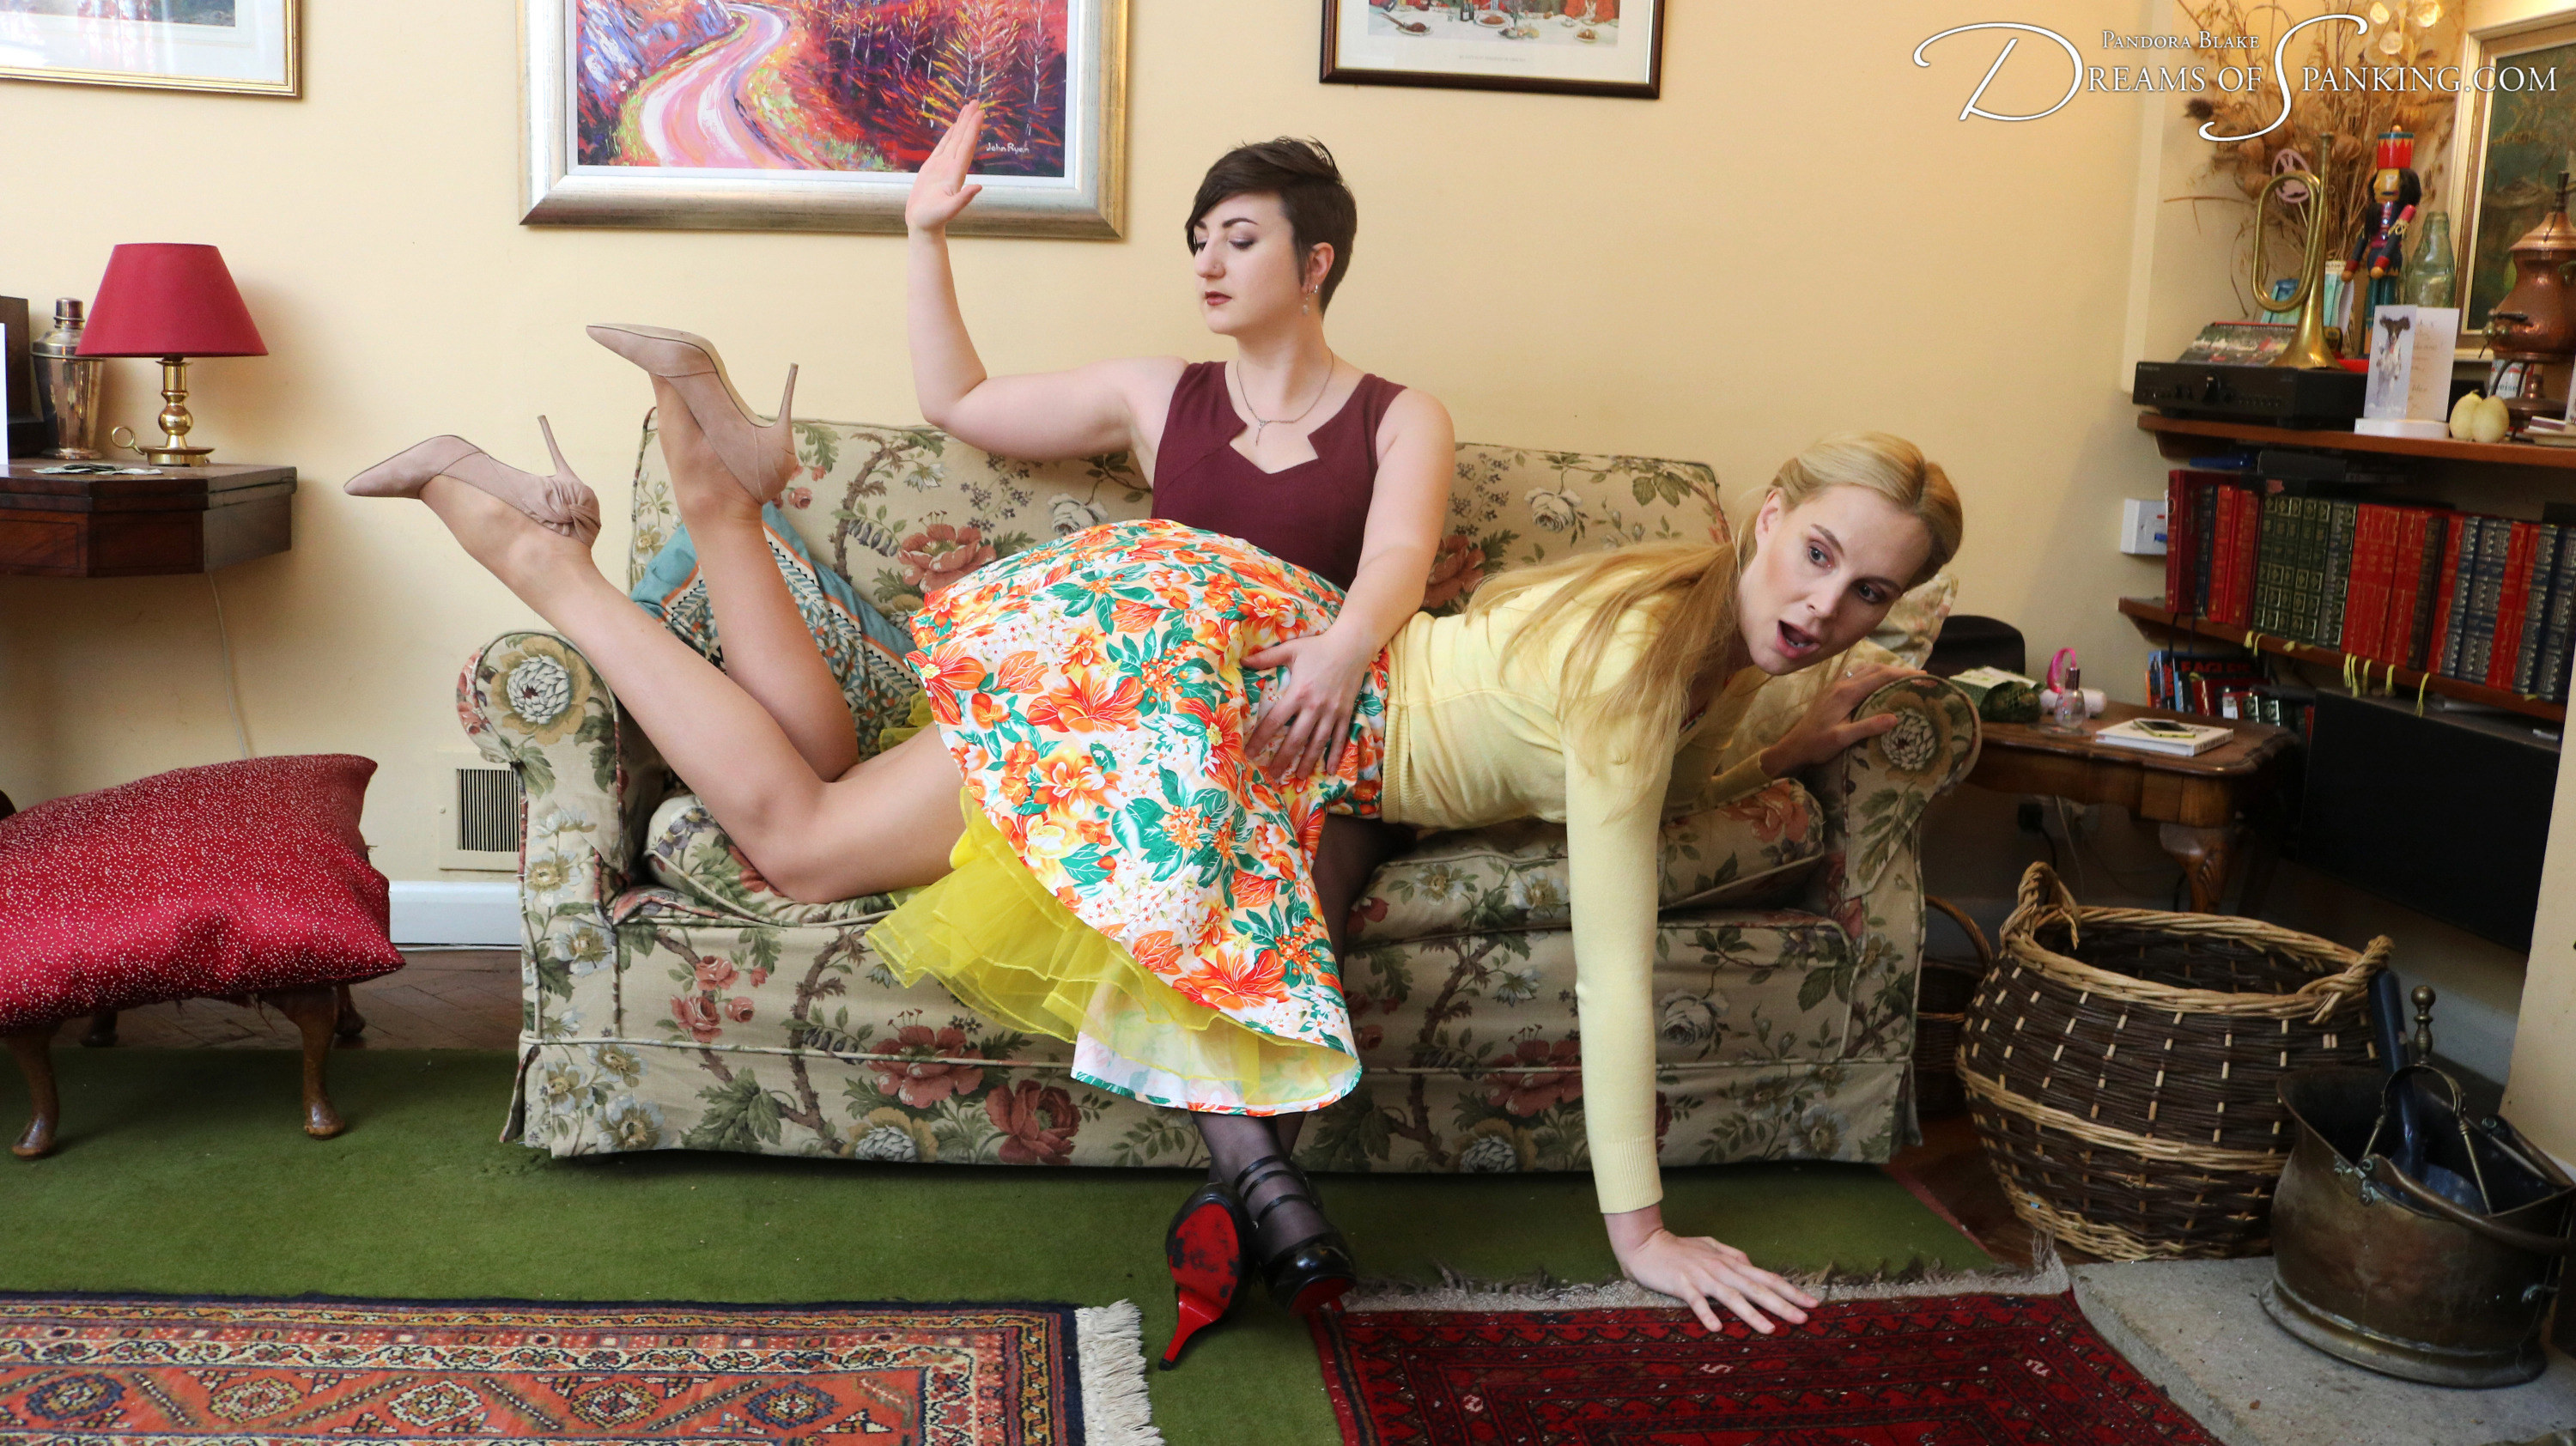 Amelia Jane Rutherford has a bright red spanked bottom at Dreams of Spanking